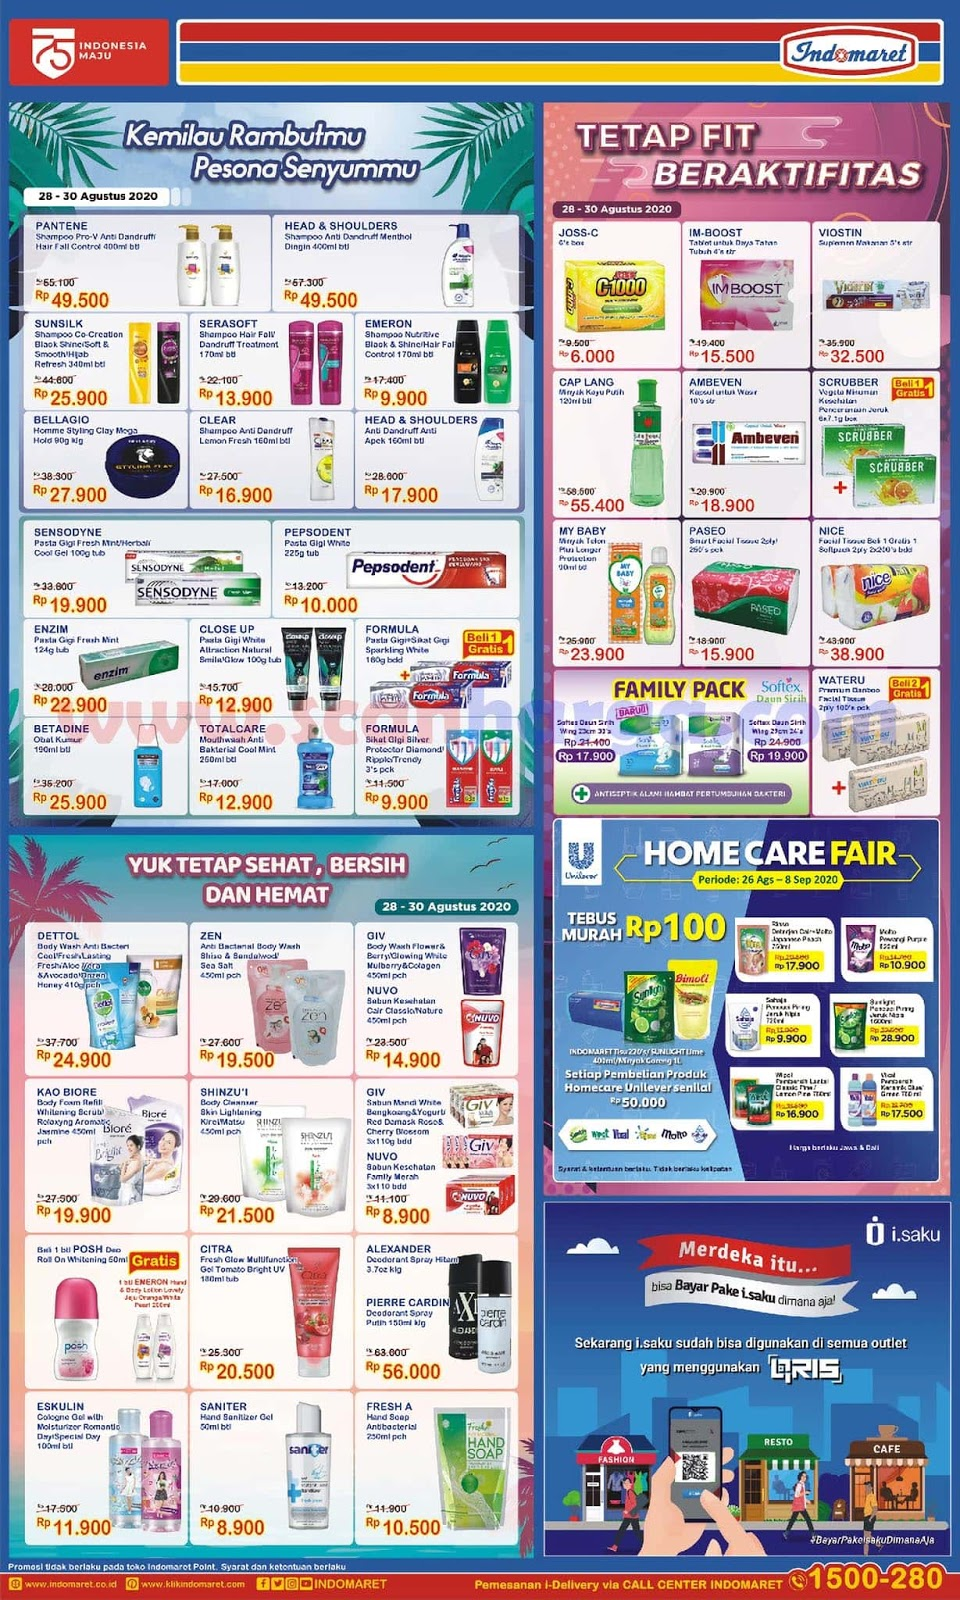 Promo Indomaret Health And Beauty Care Hanya 3 Hari Periode 28 - 30 Agustus 2020